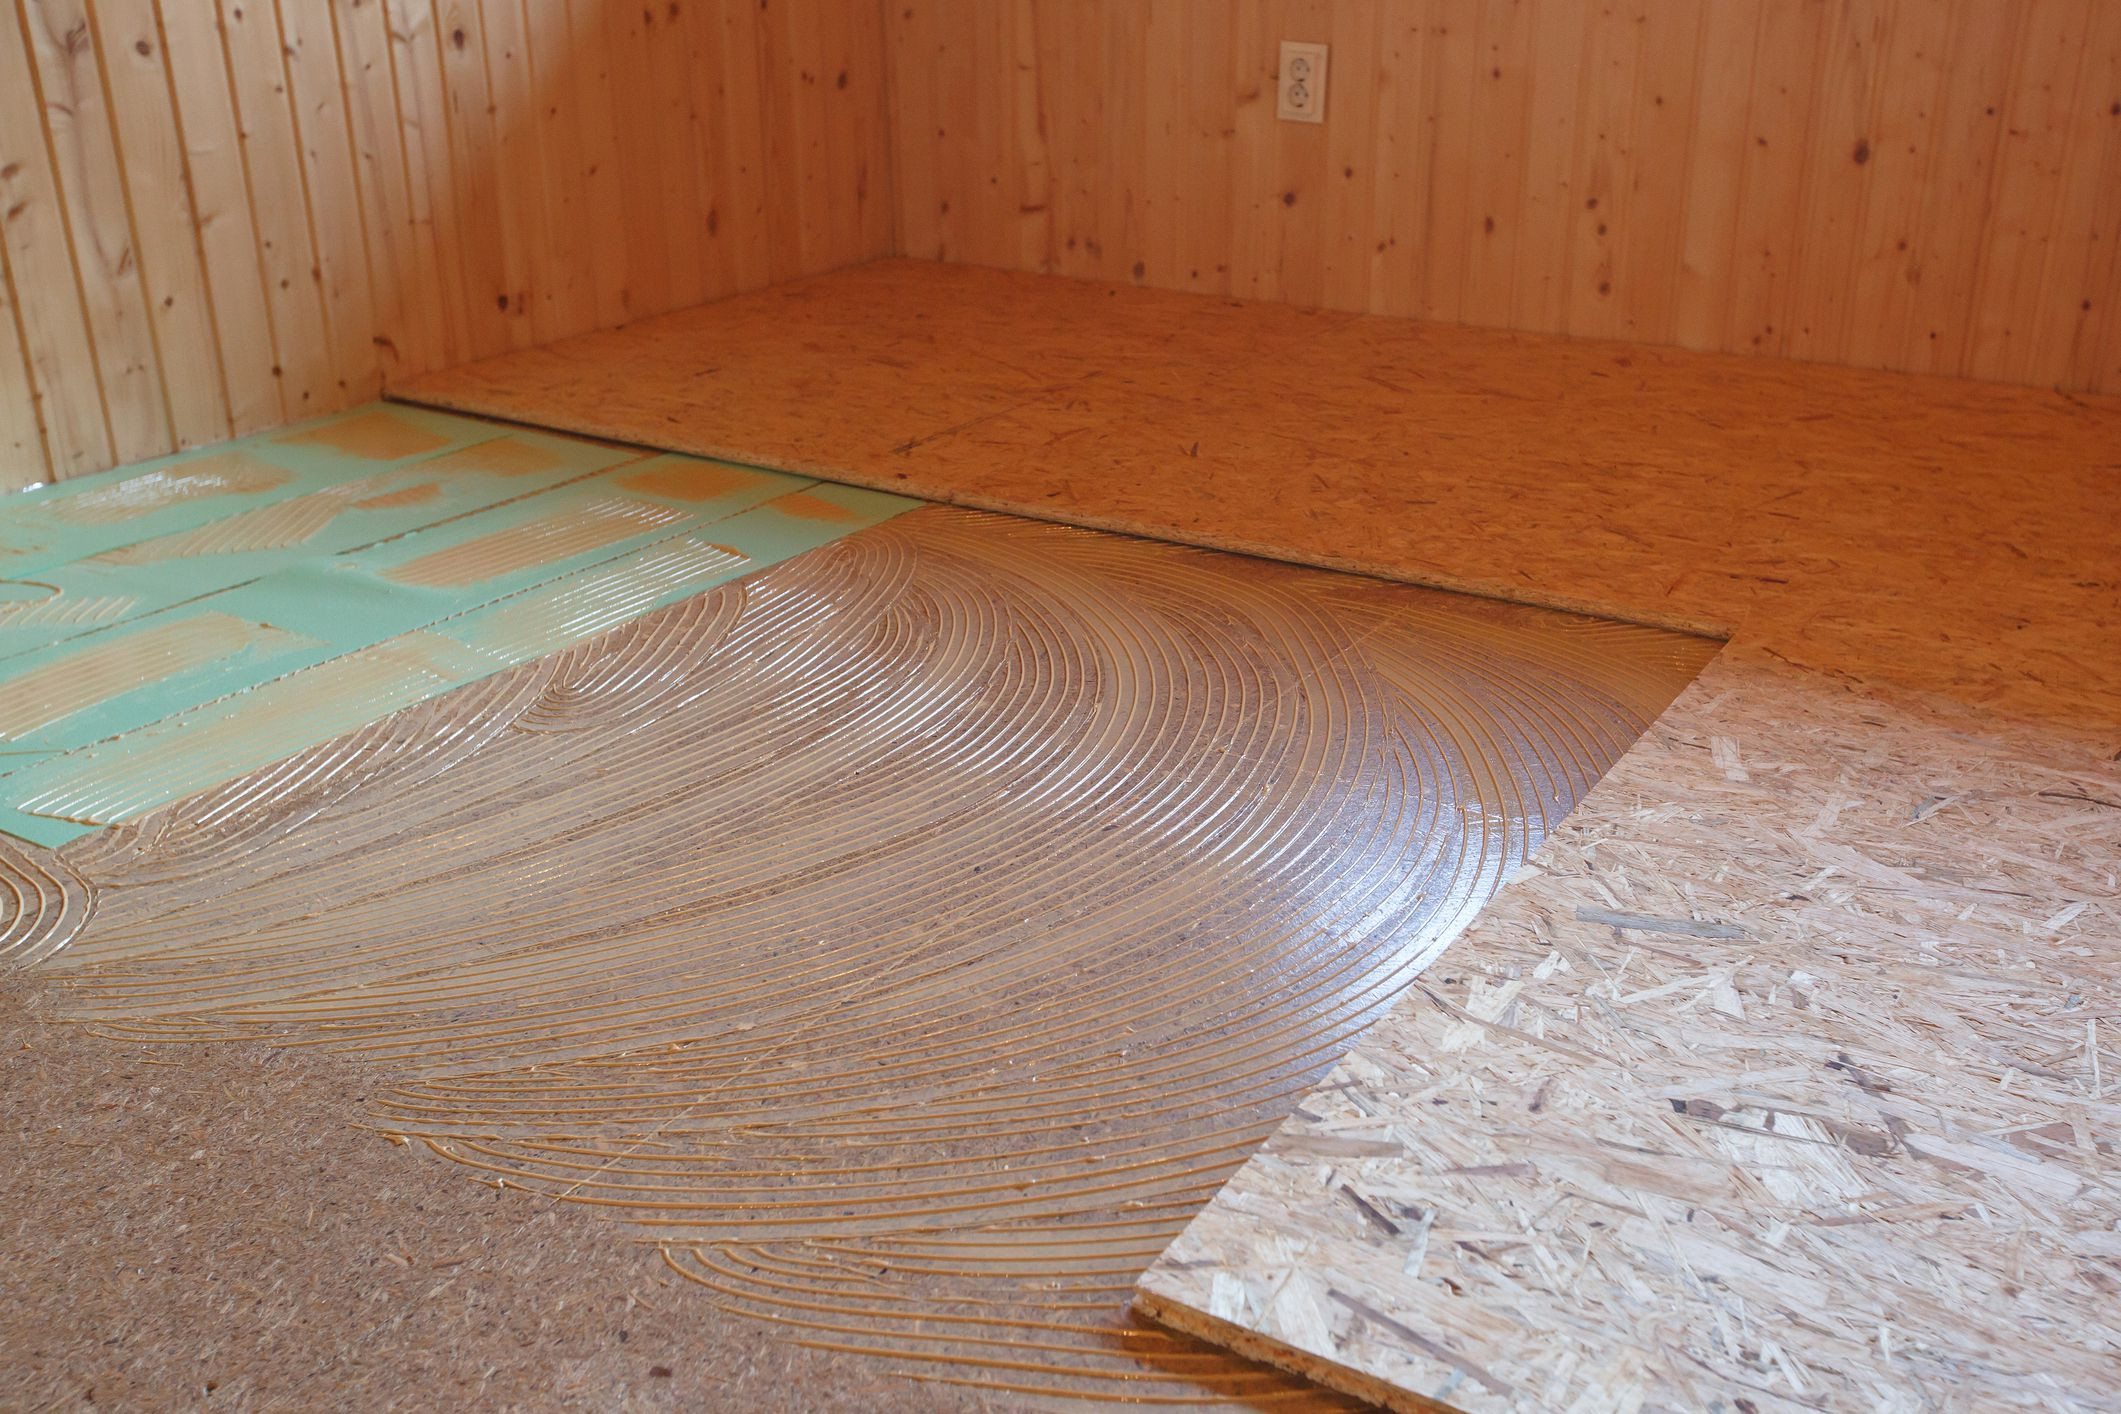 hardwood floor vapor barrier paper of types of subfloor materials in construction projects throughout gettyimages 892047030 5af5f46fc064710036eebd22